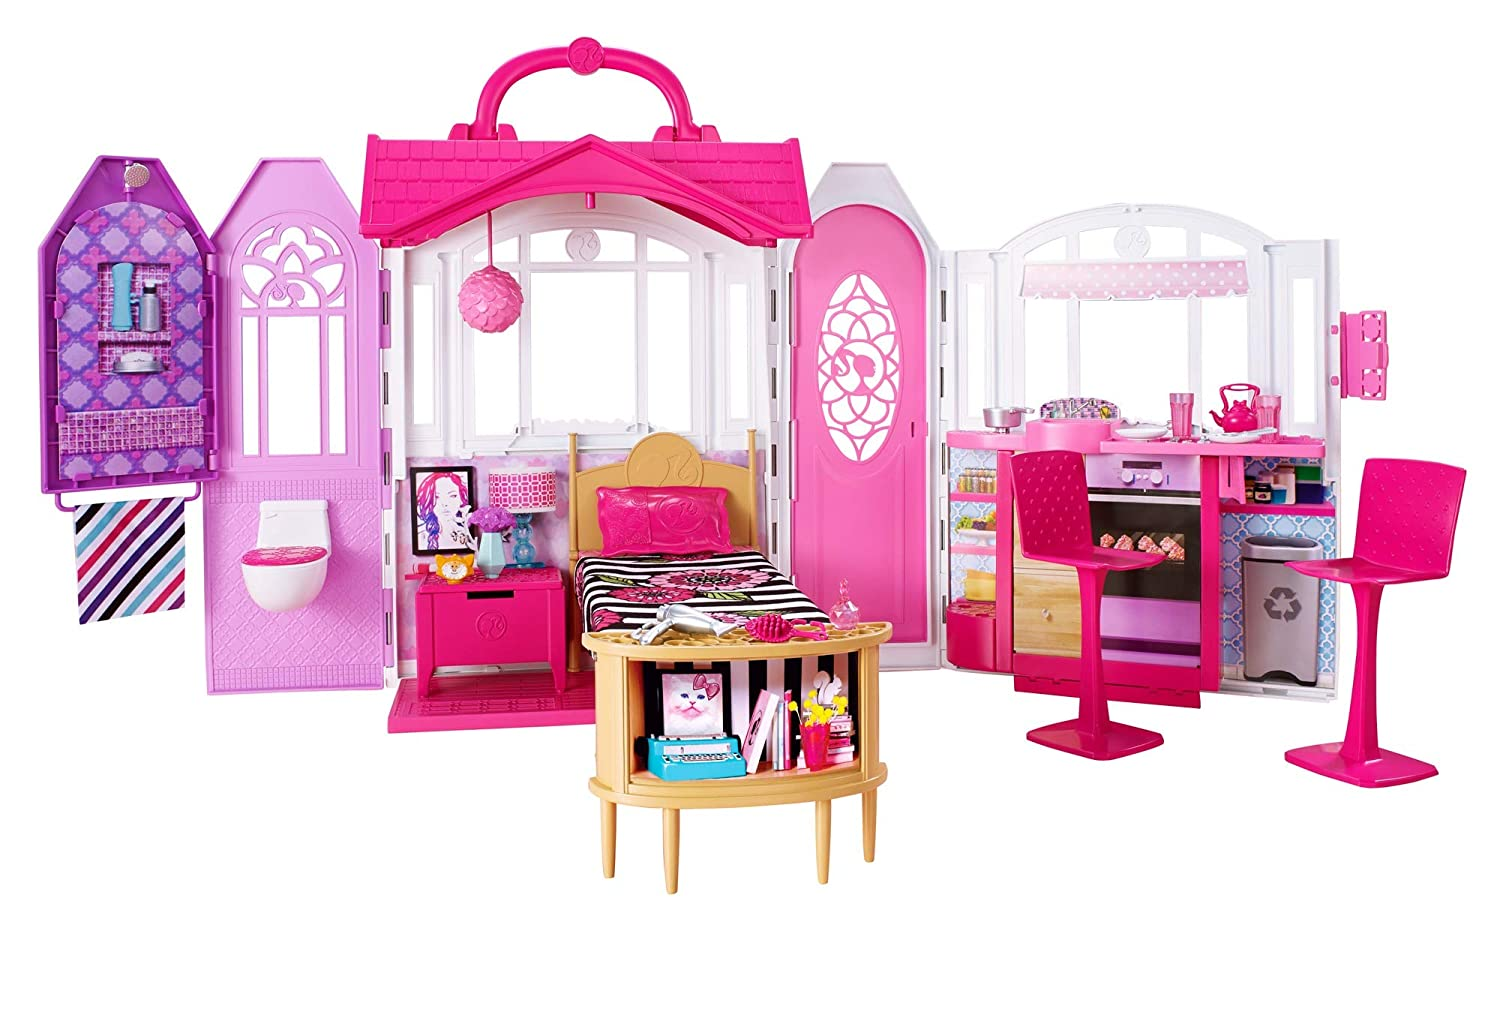 Barbie Glam Getaway House Playset Mattel CHF54